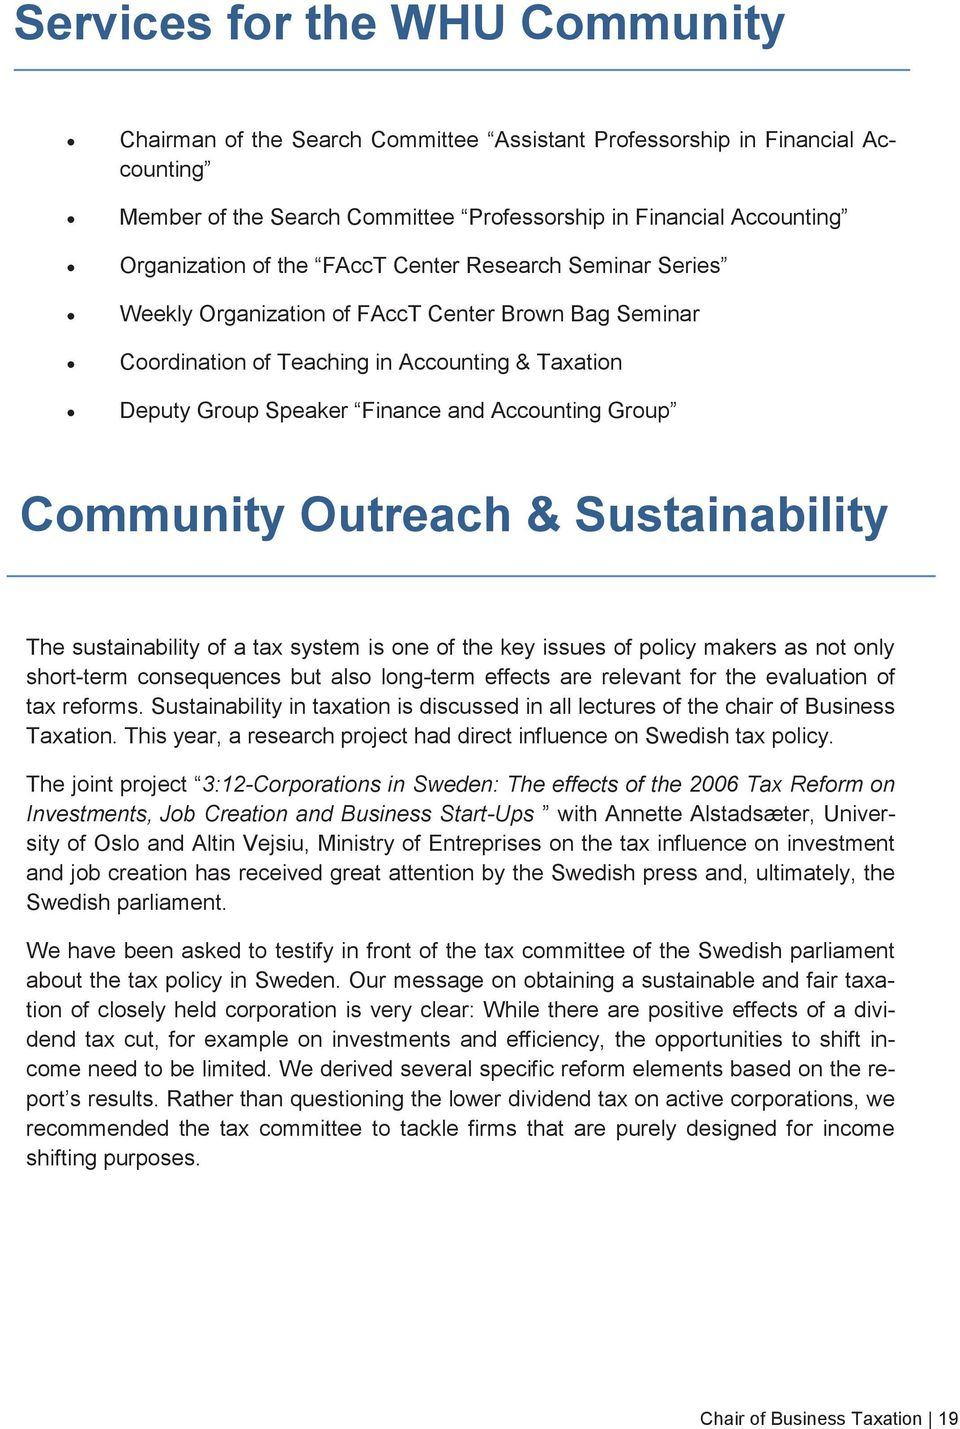 Community Outreach & Sustainability The sustainability of a tax system is one of the key issues of policy makers as not only short-term consequences but also long-term effects are relevant for the